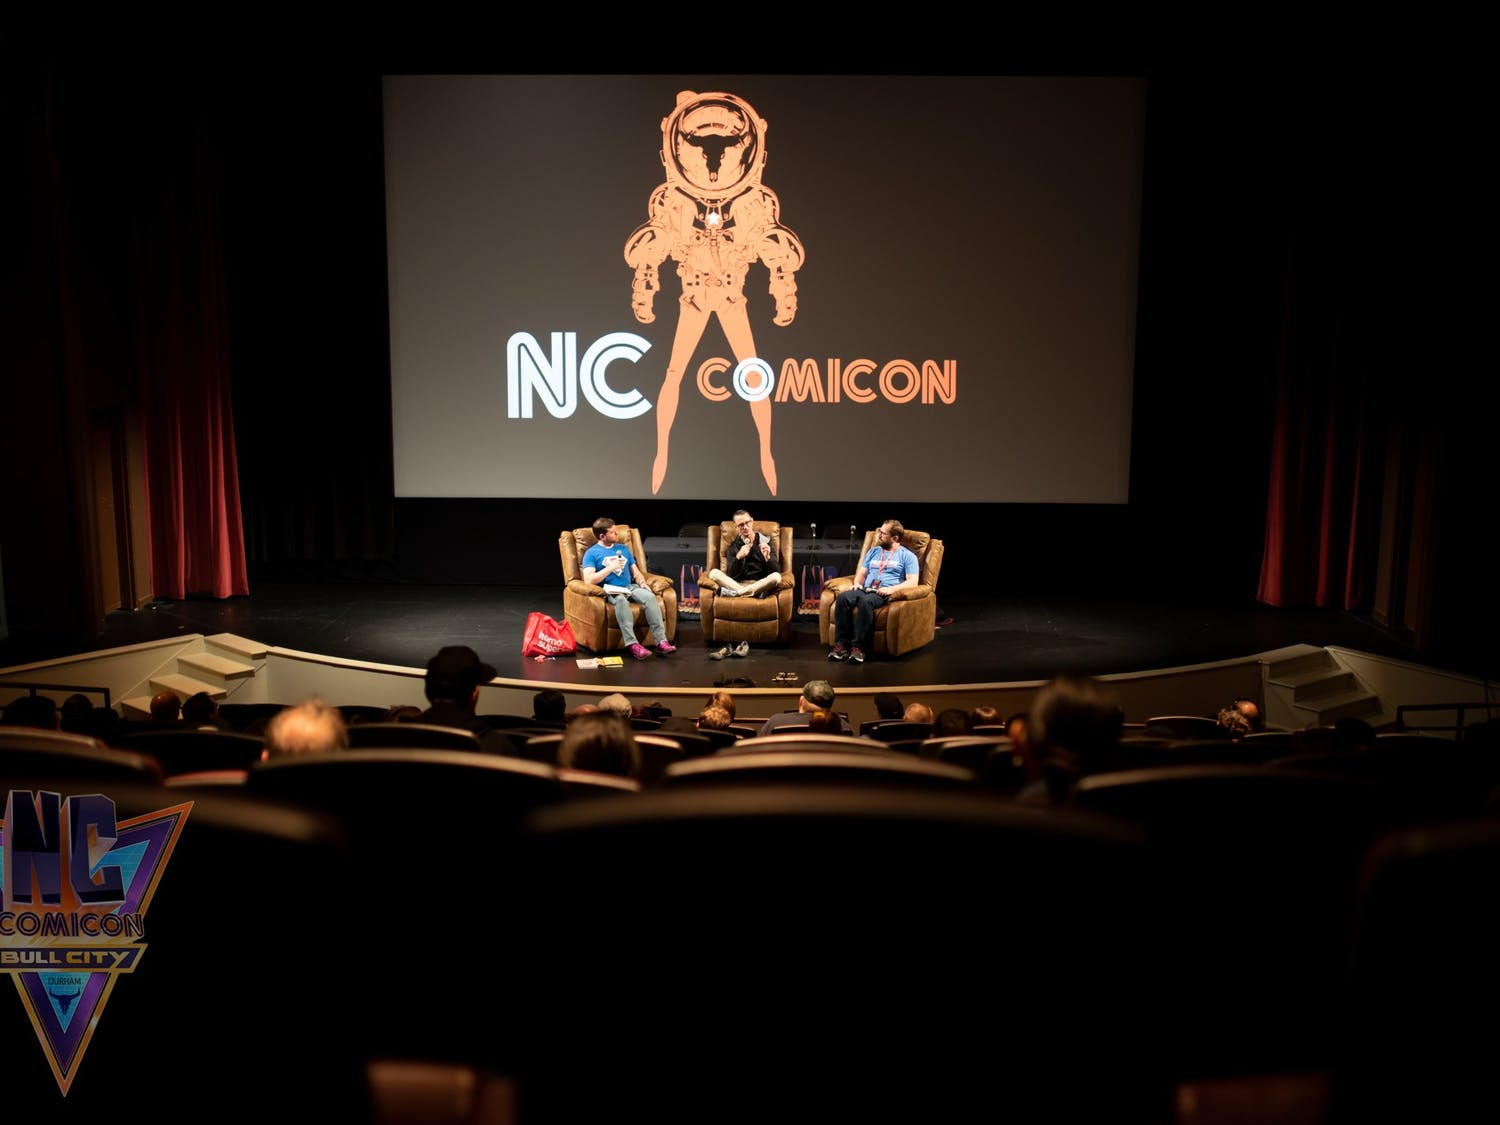 """NC ComiconPanel DirectorMatt Conner M.D. (far left) and Ssalefish Comics owner Bret Parks (far right) interview legendary """"Fight Club"""" author Chuck Palahniuk (center) about how his books transition intofilms.Photo courtesy of NC Comicon lead photographerCordelia Danan."""